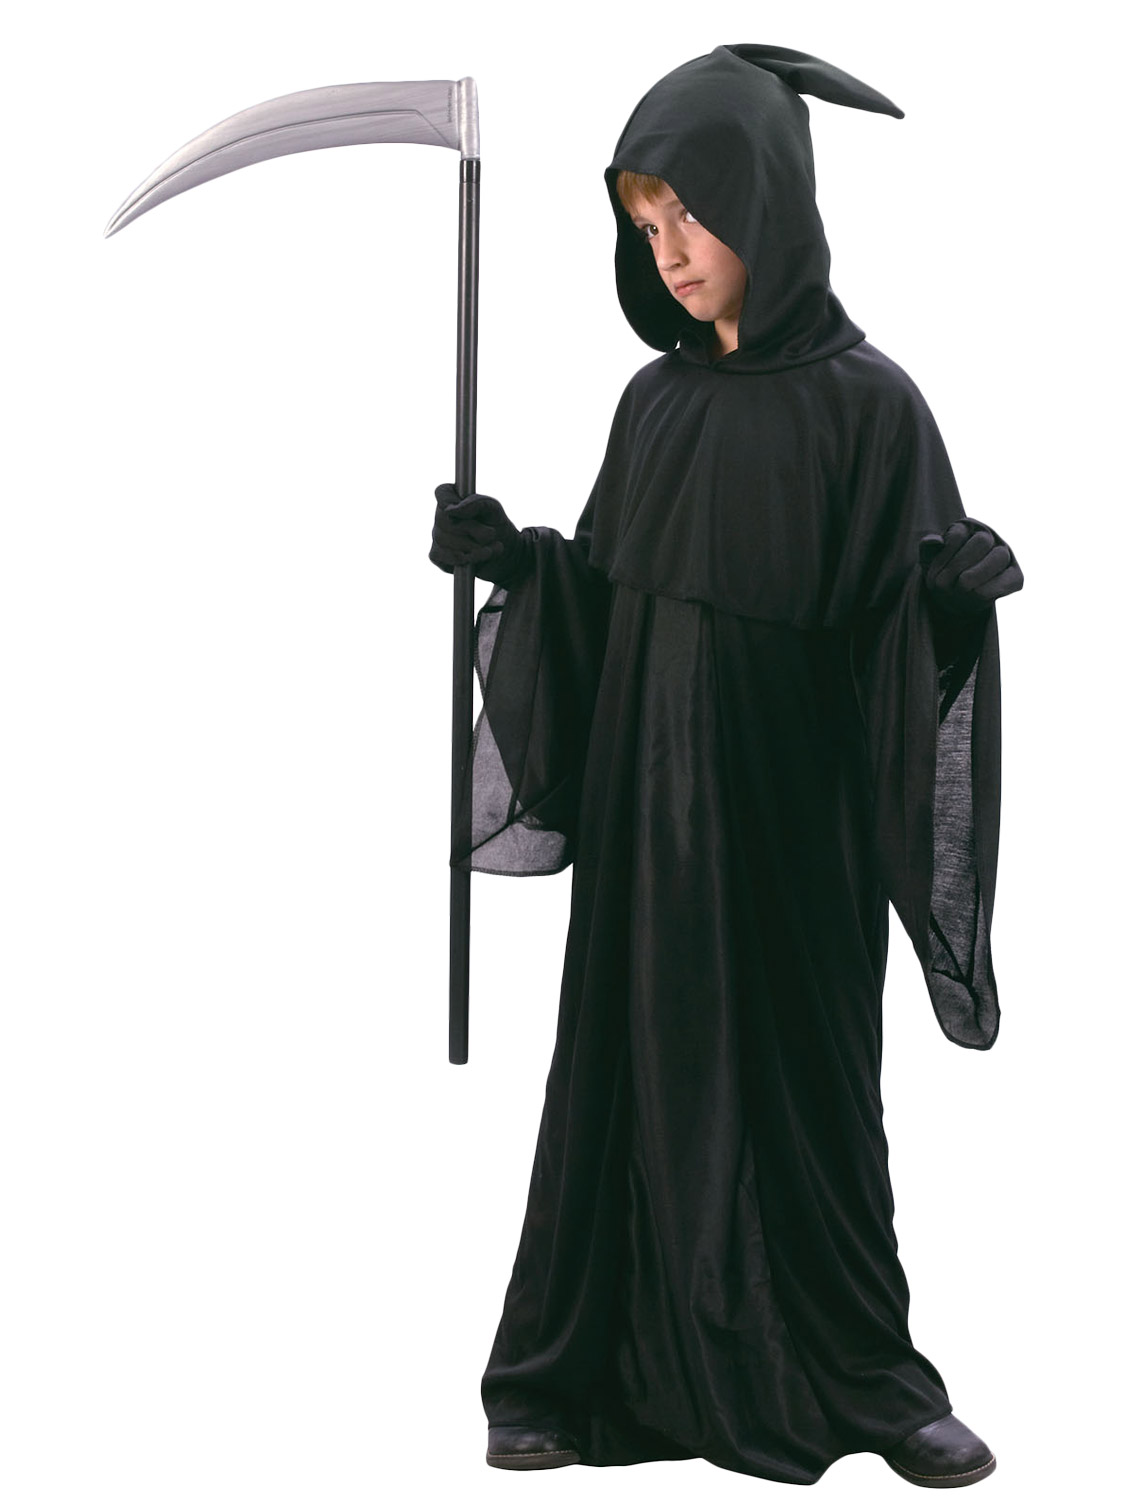 ... abe lincoln costume boys grim reaper costume kids fancy dress childrens ...  sc 1 st  Best Kids Costumes & Abraham Lincoln Costumes For Kids - Best Kids Costumes